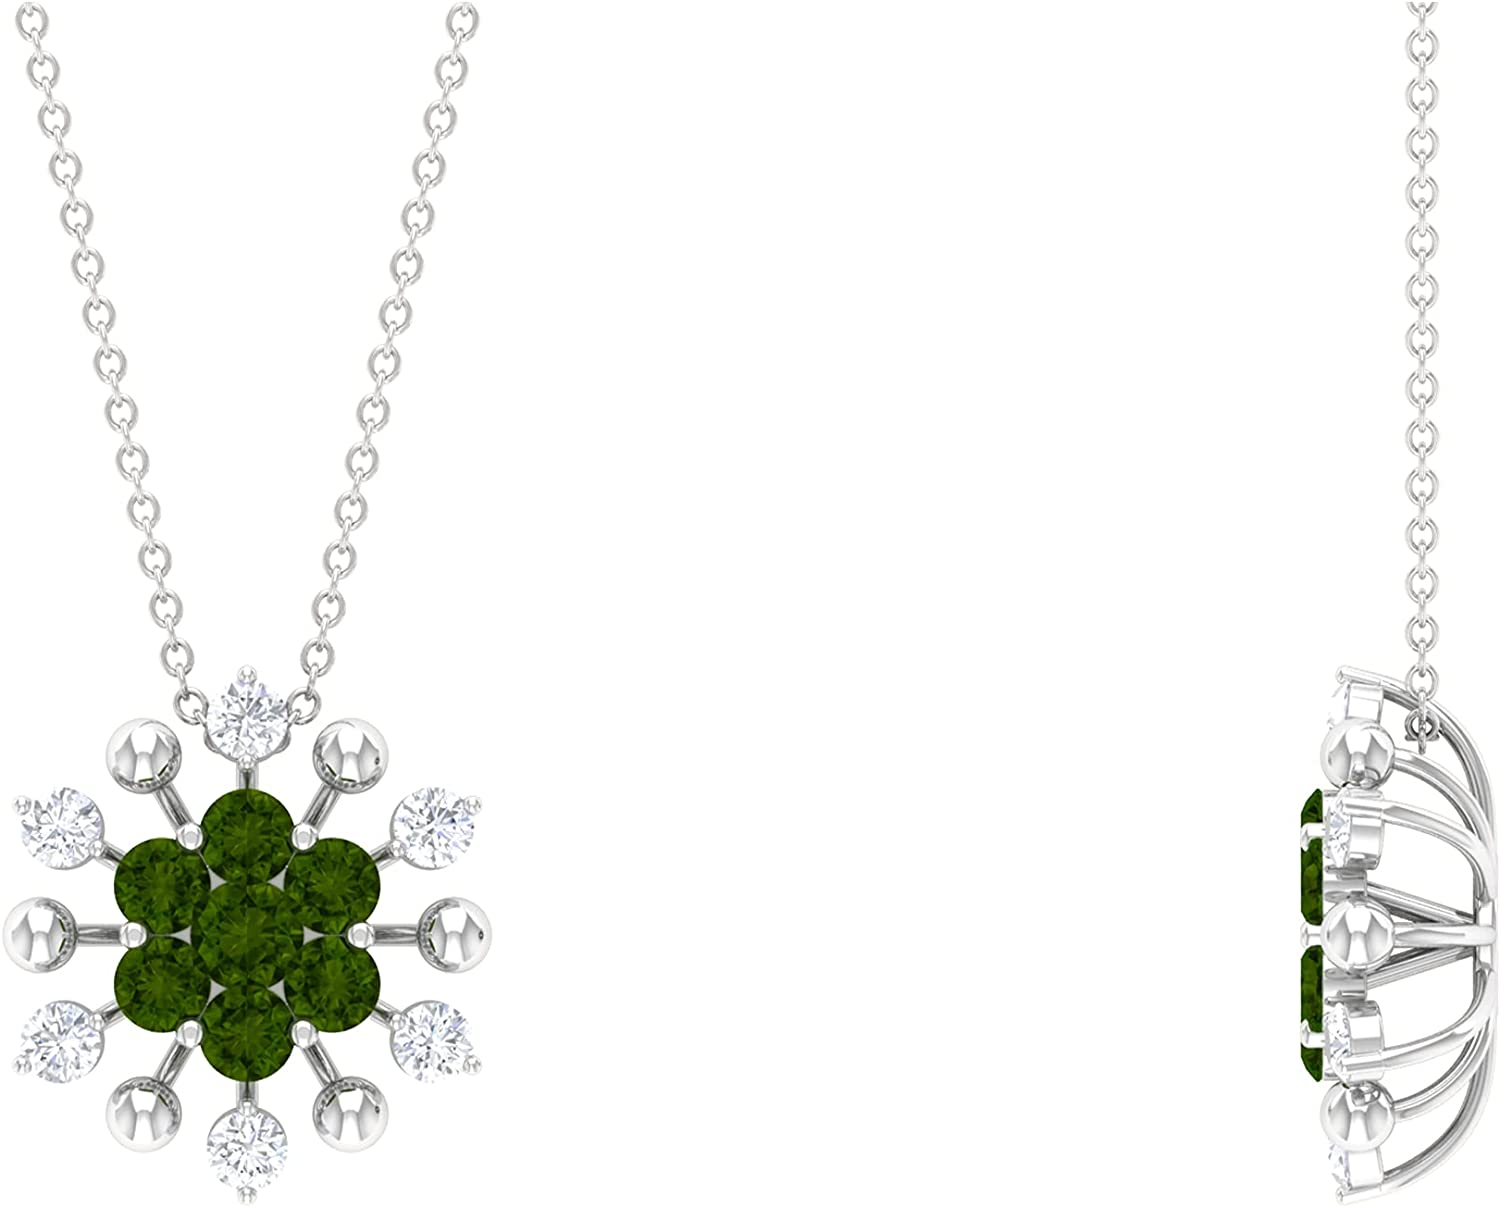 1.25 CT Green depot Tourmaline and Neck Pendant Max 53% OFF Cluster Floral Diamond